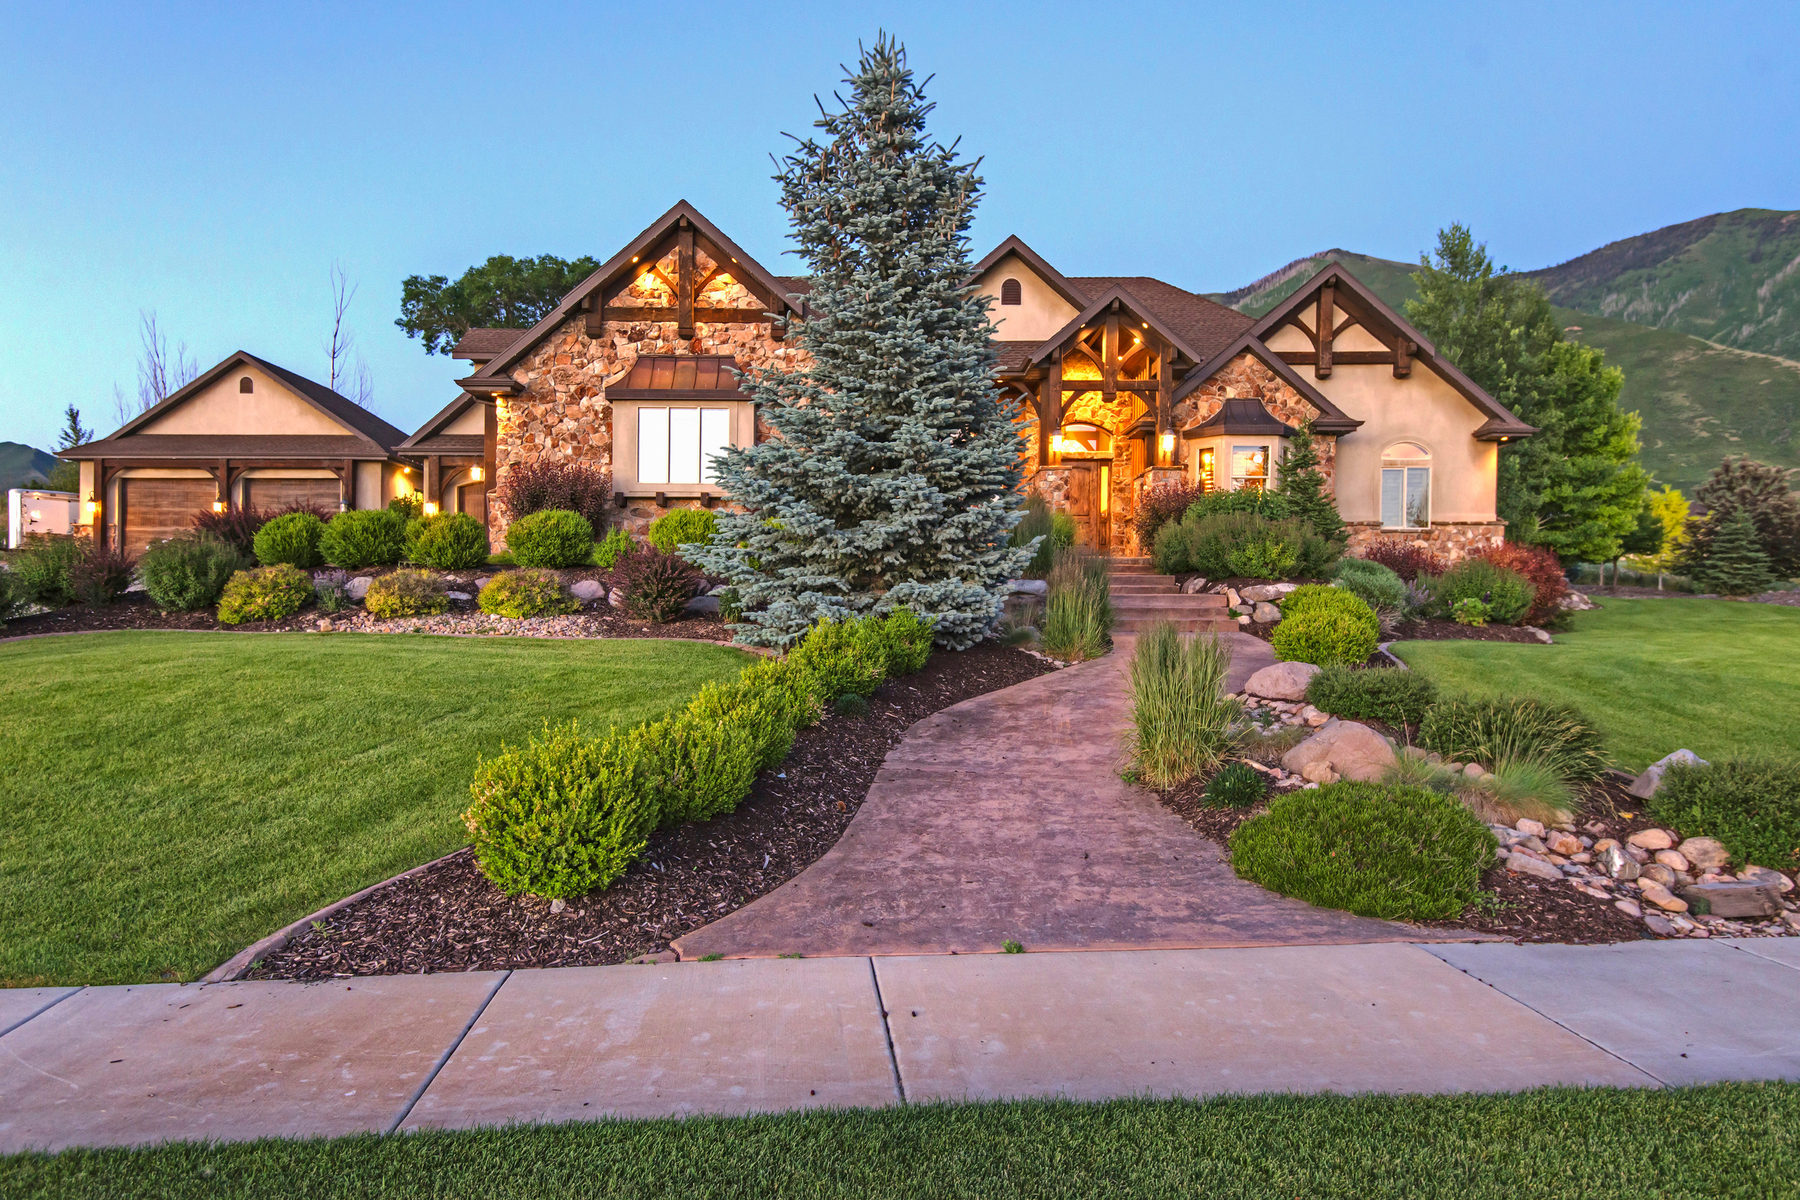 Villa per Vendita alle ore Living the Dream in Mapleton 2449 S Brush Canyon Dr Mapleton, Utah 84664 Stati Uniti